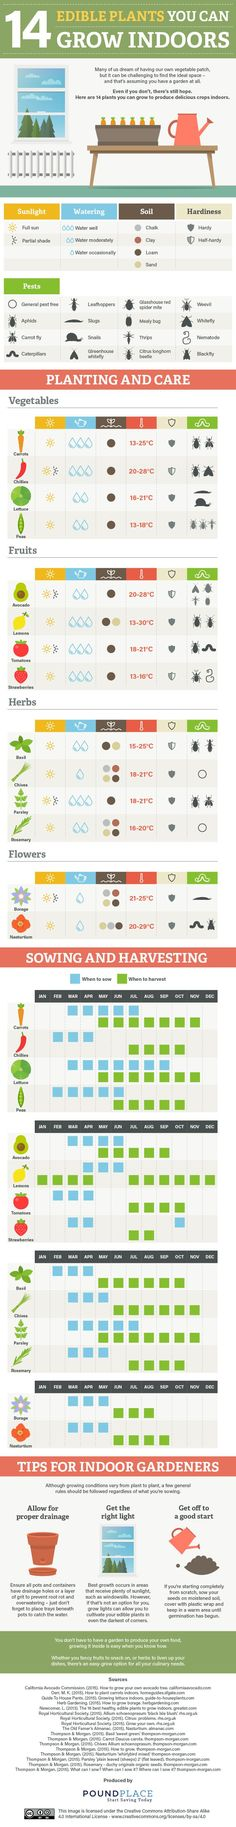 These are the fruits, vegetables, herbs, and flowers your indoor garden needs.